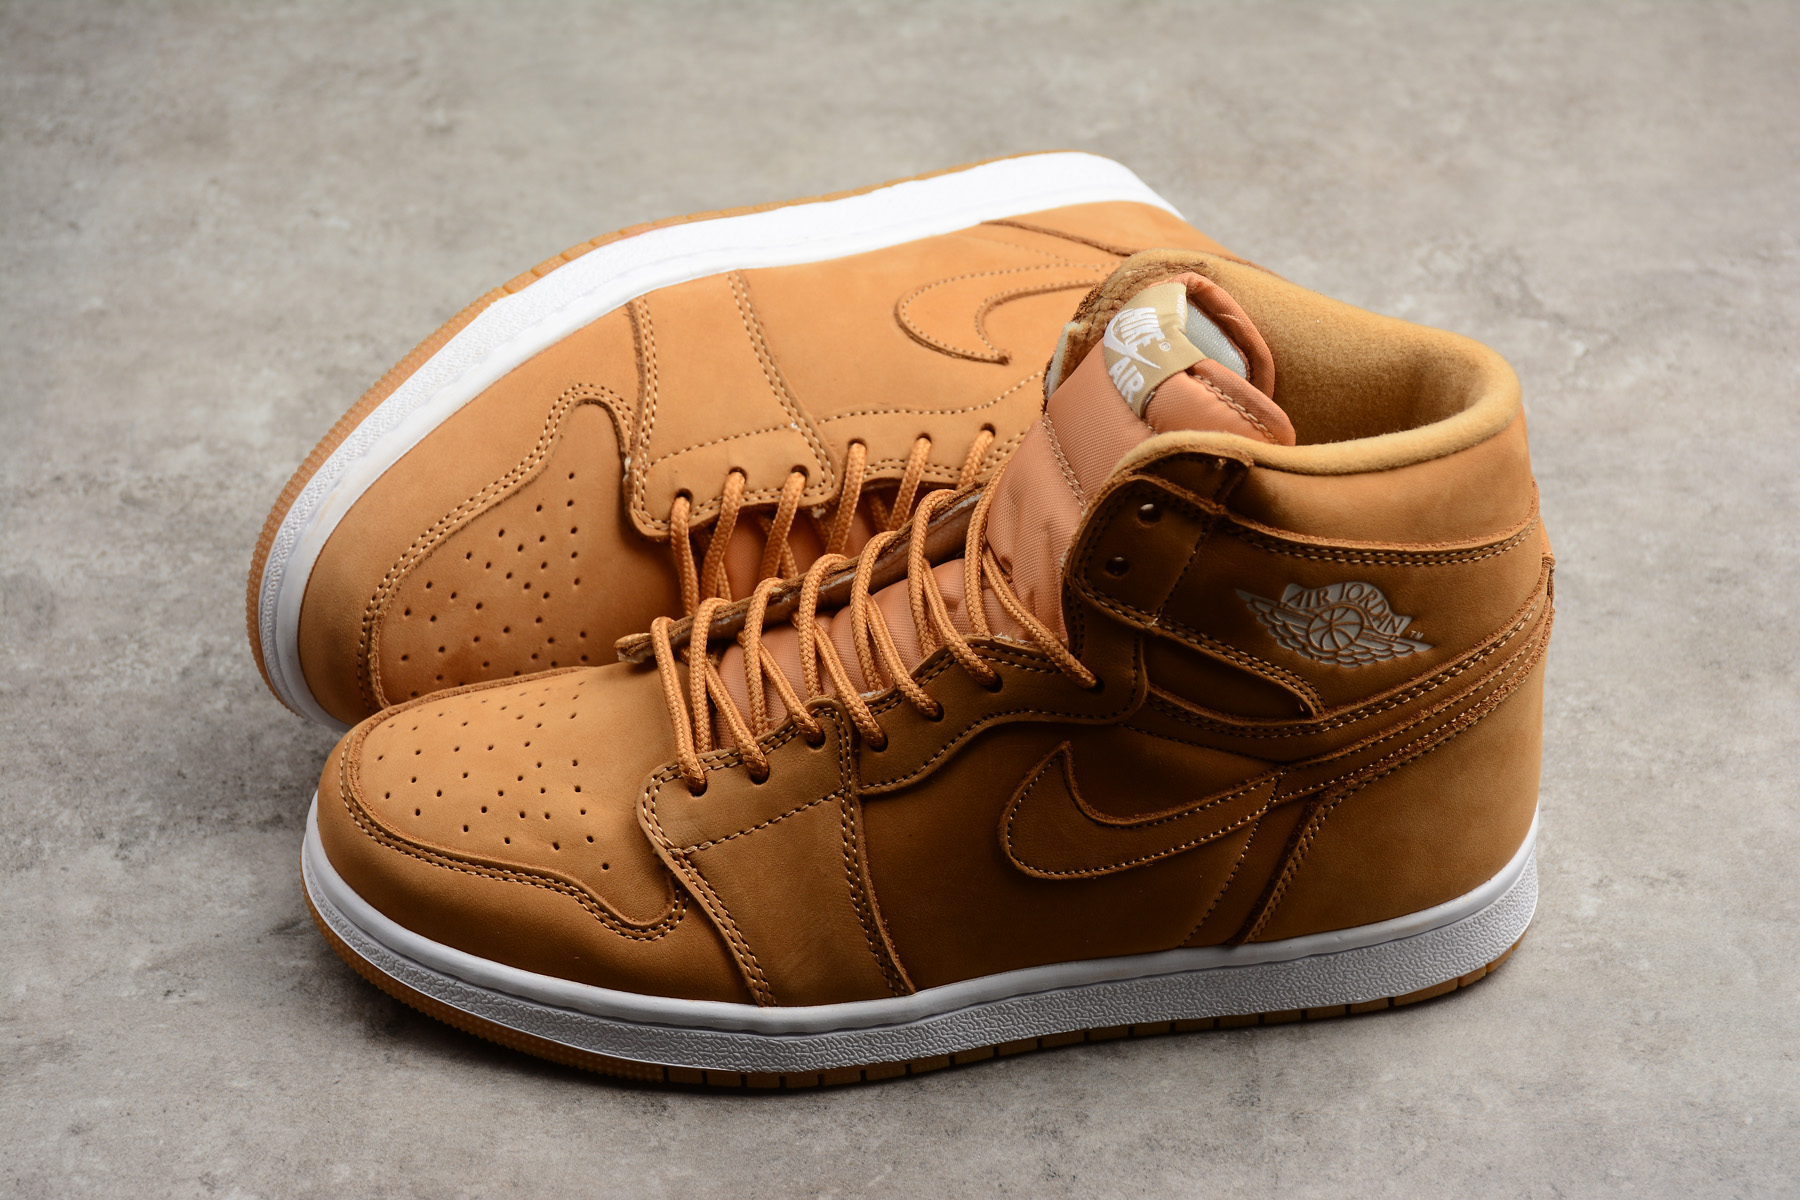 new air jordan 1 retro high og wheat